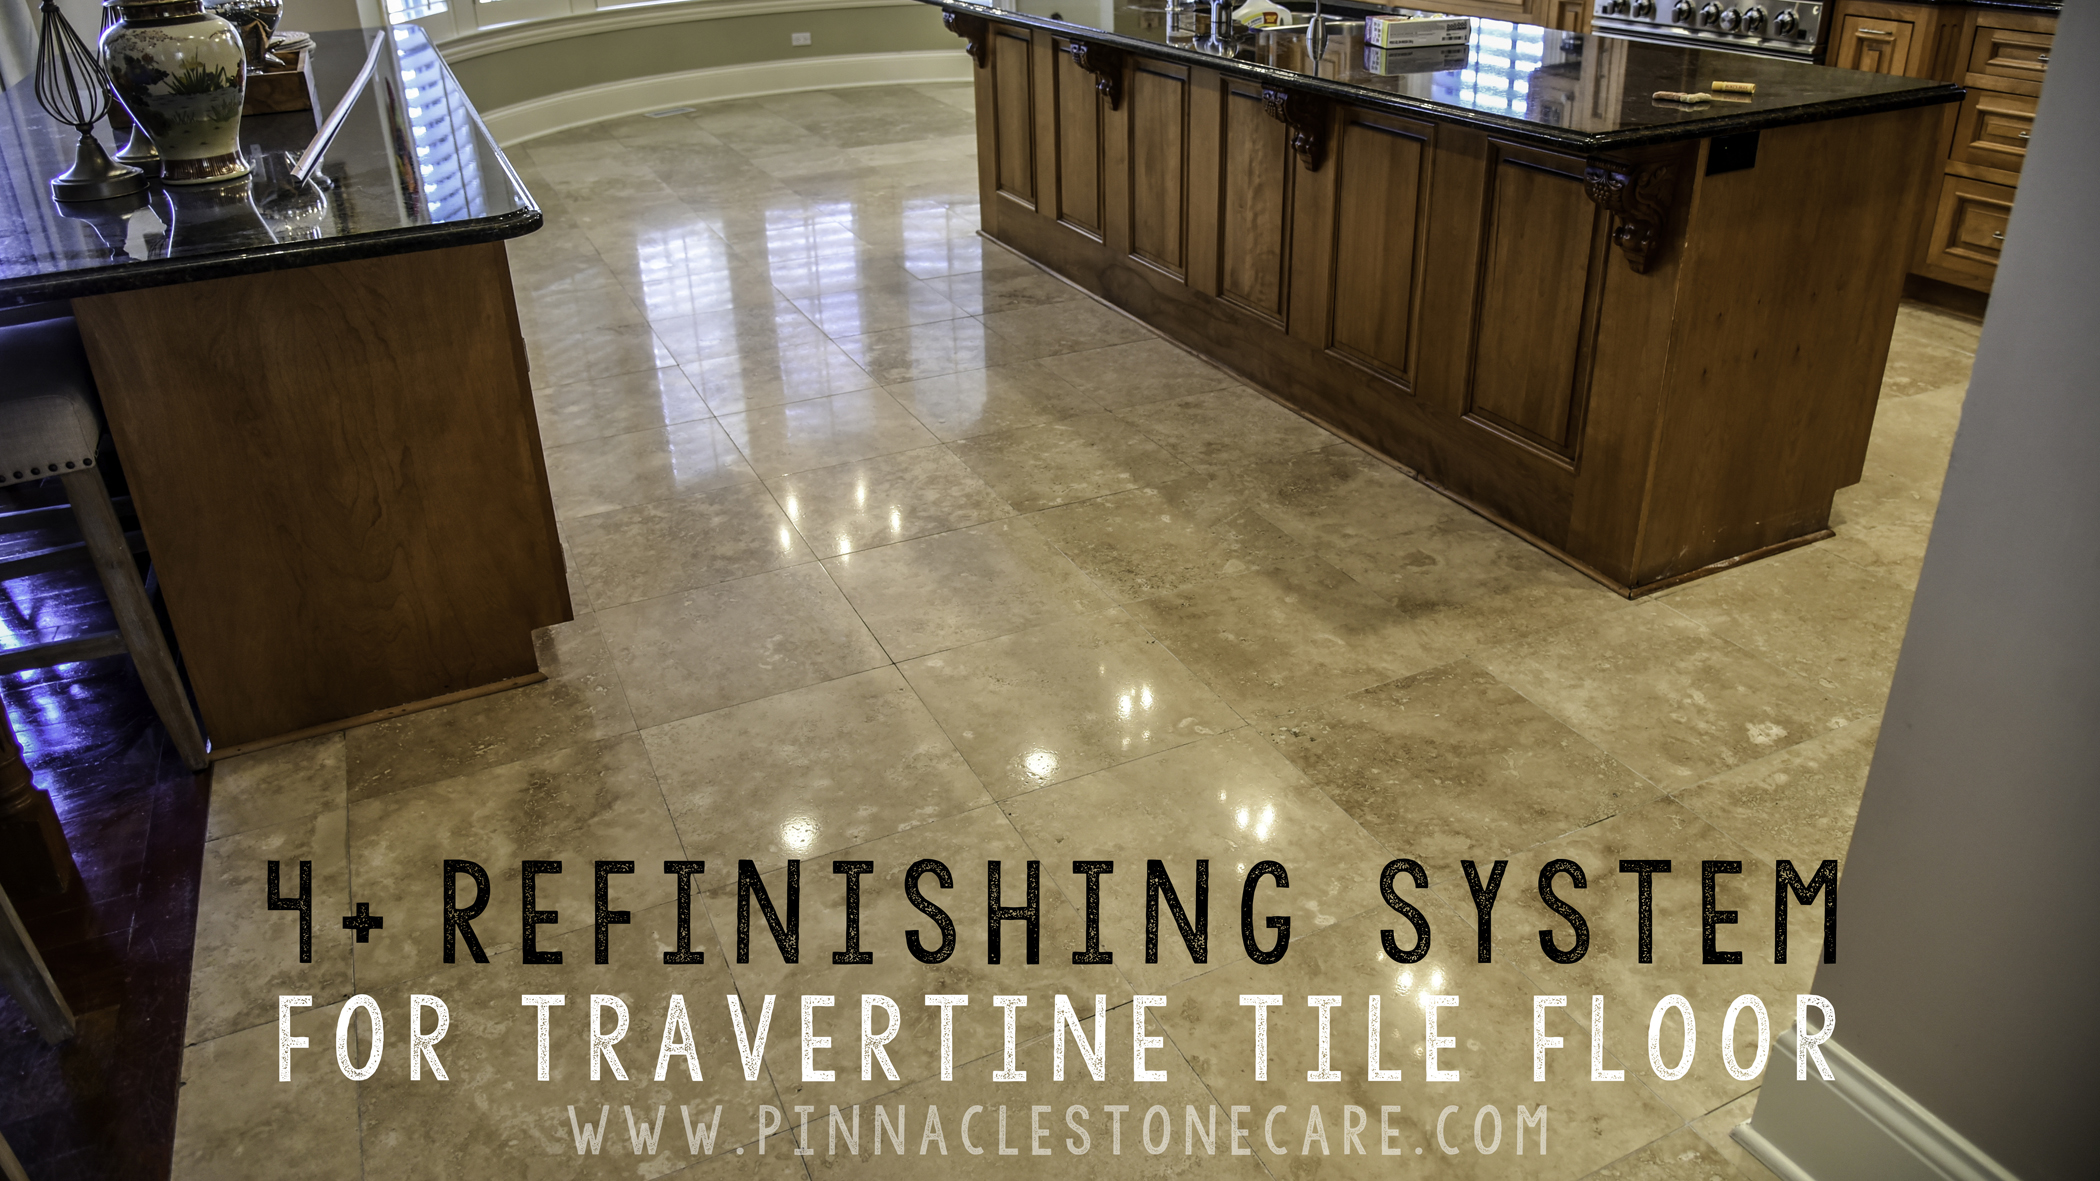 4+ restoration system of travertine tile floor